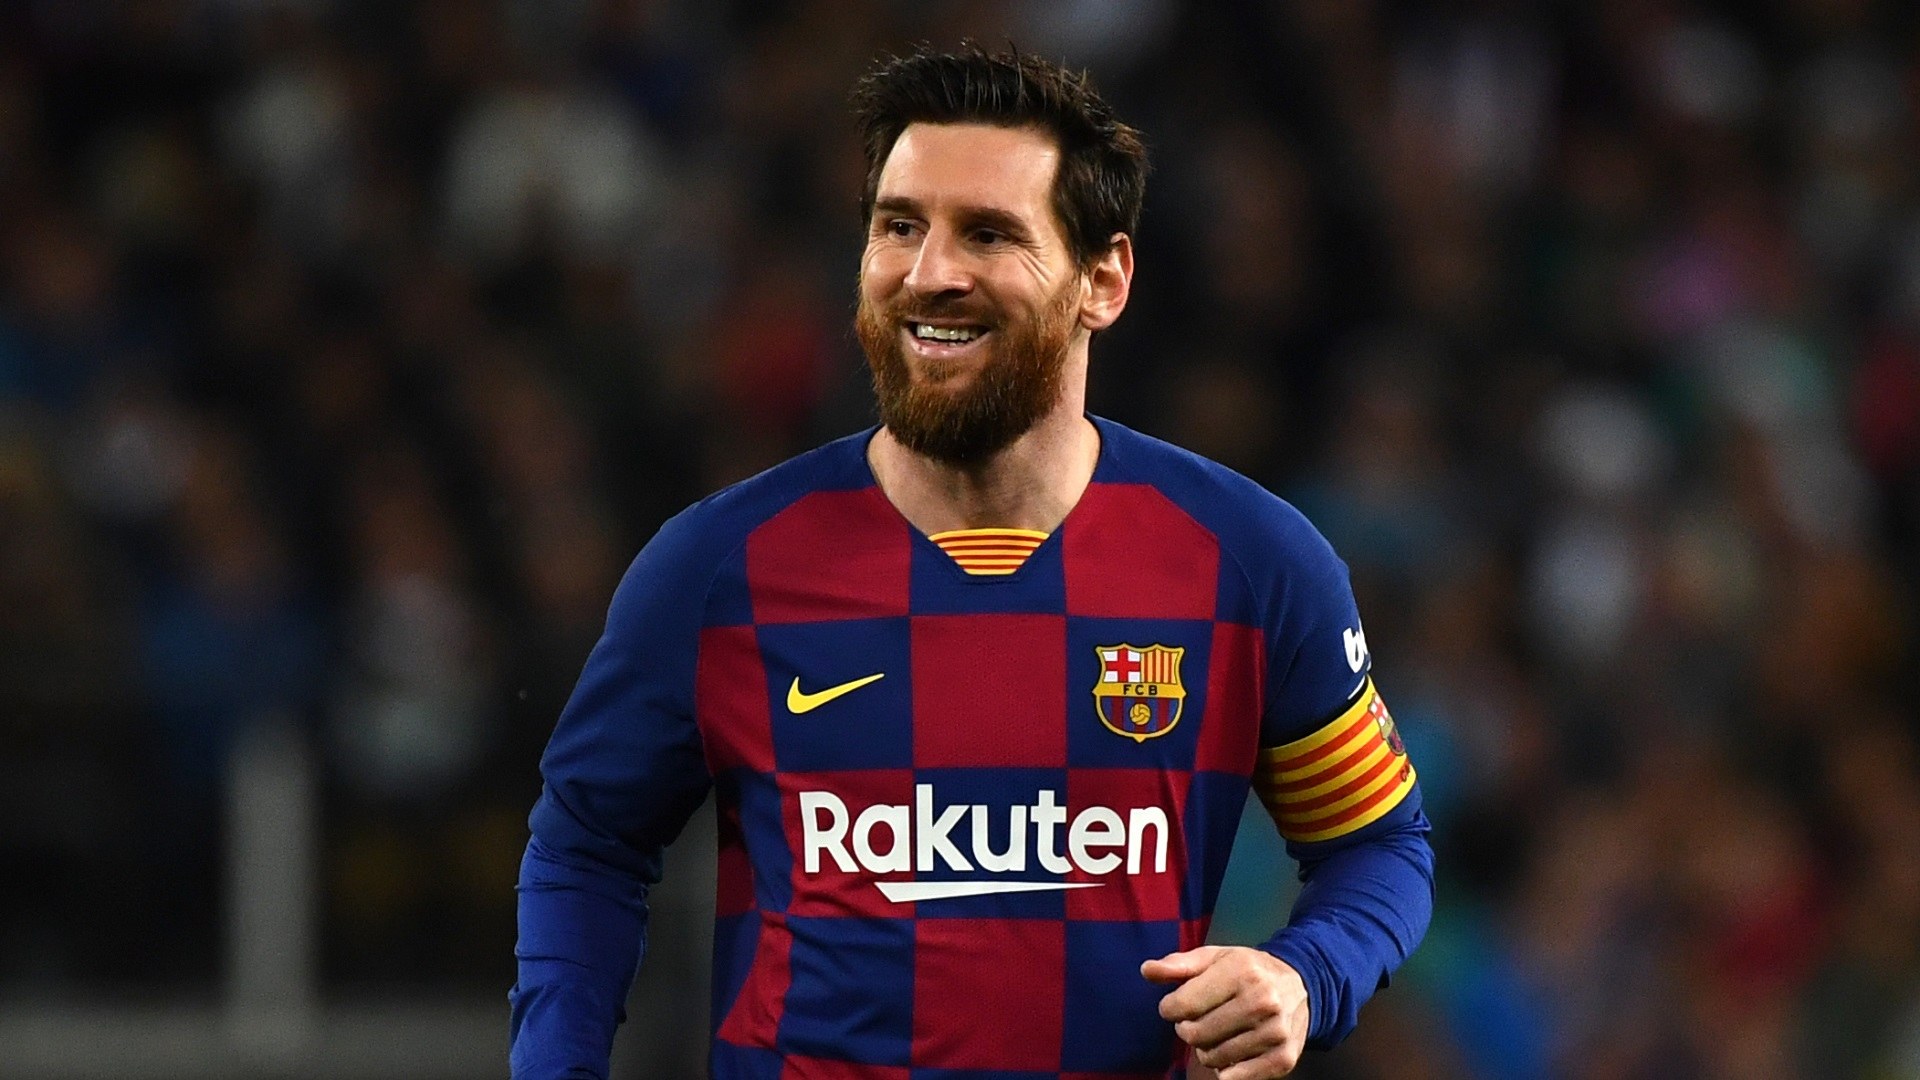 Messi returns to Barcelona training ground: AFP reporter